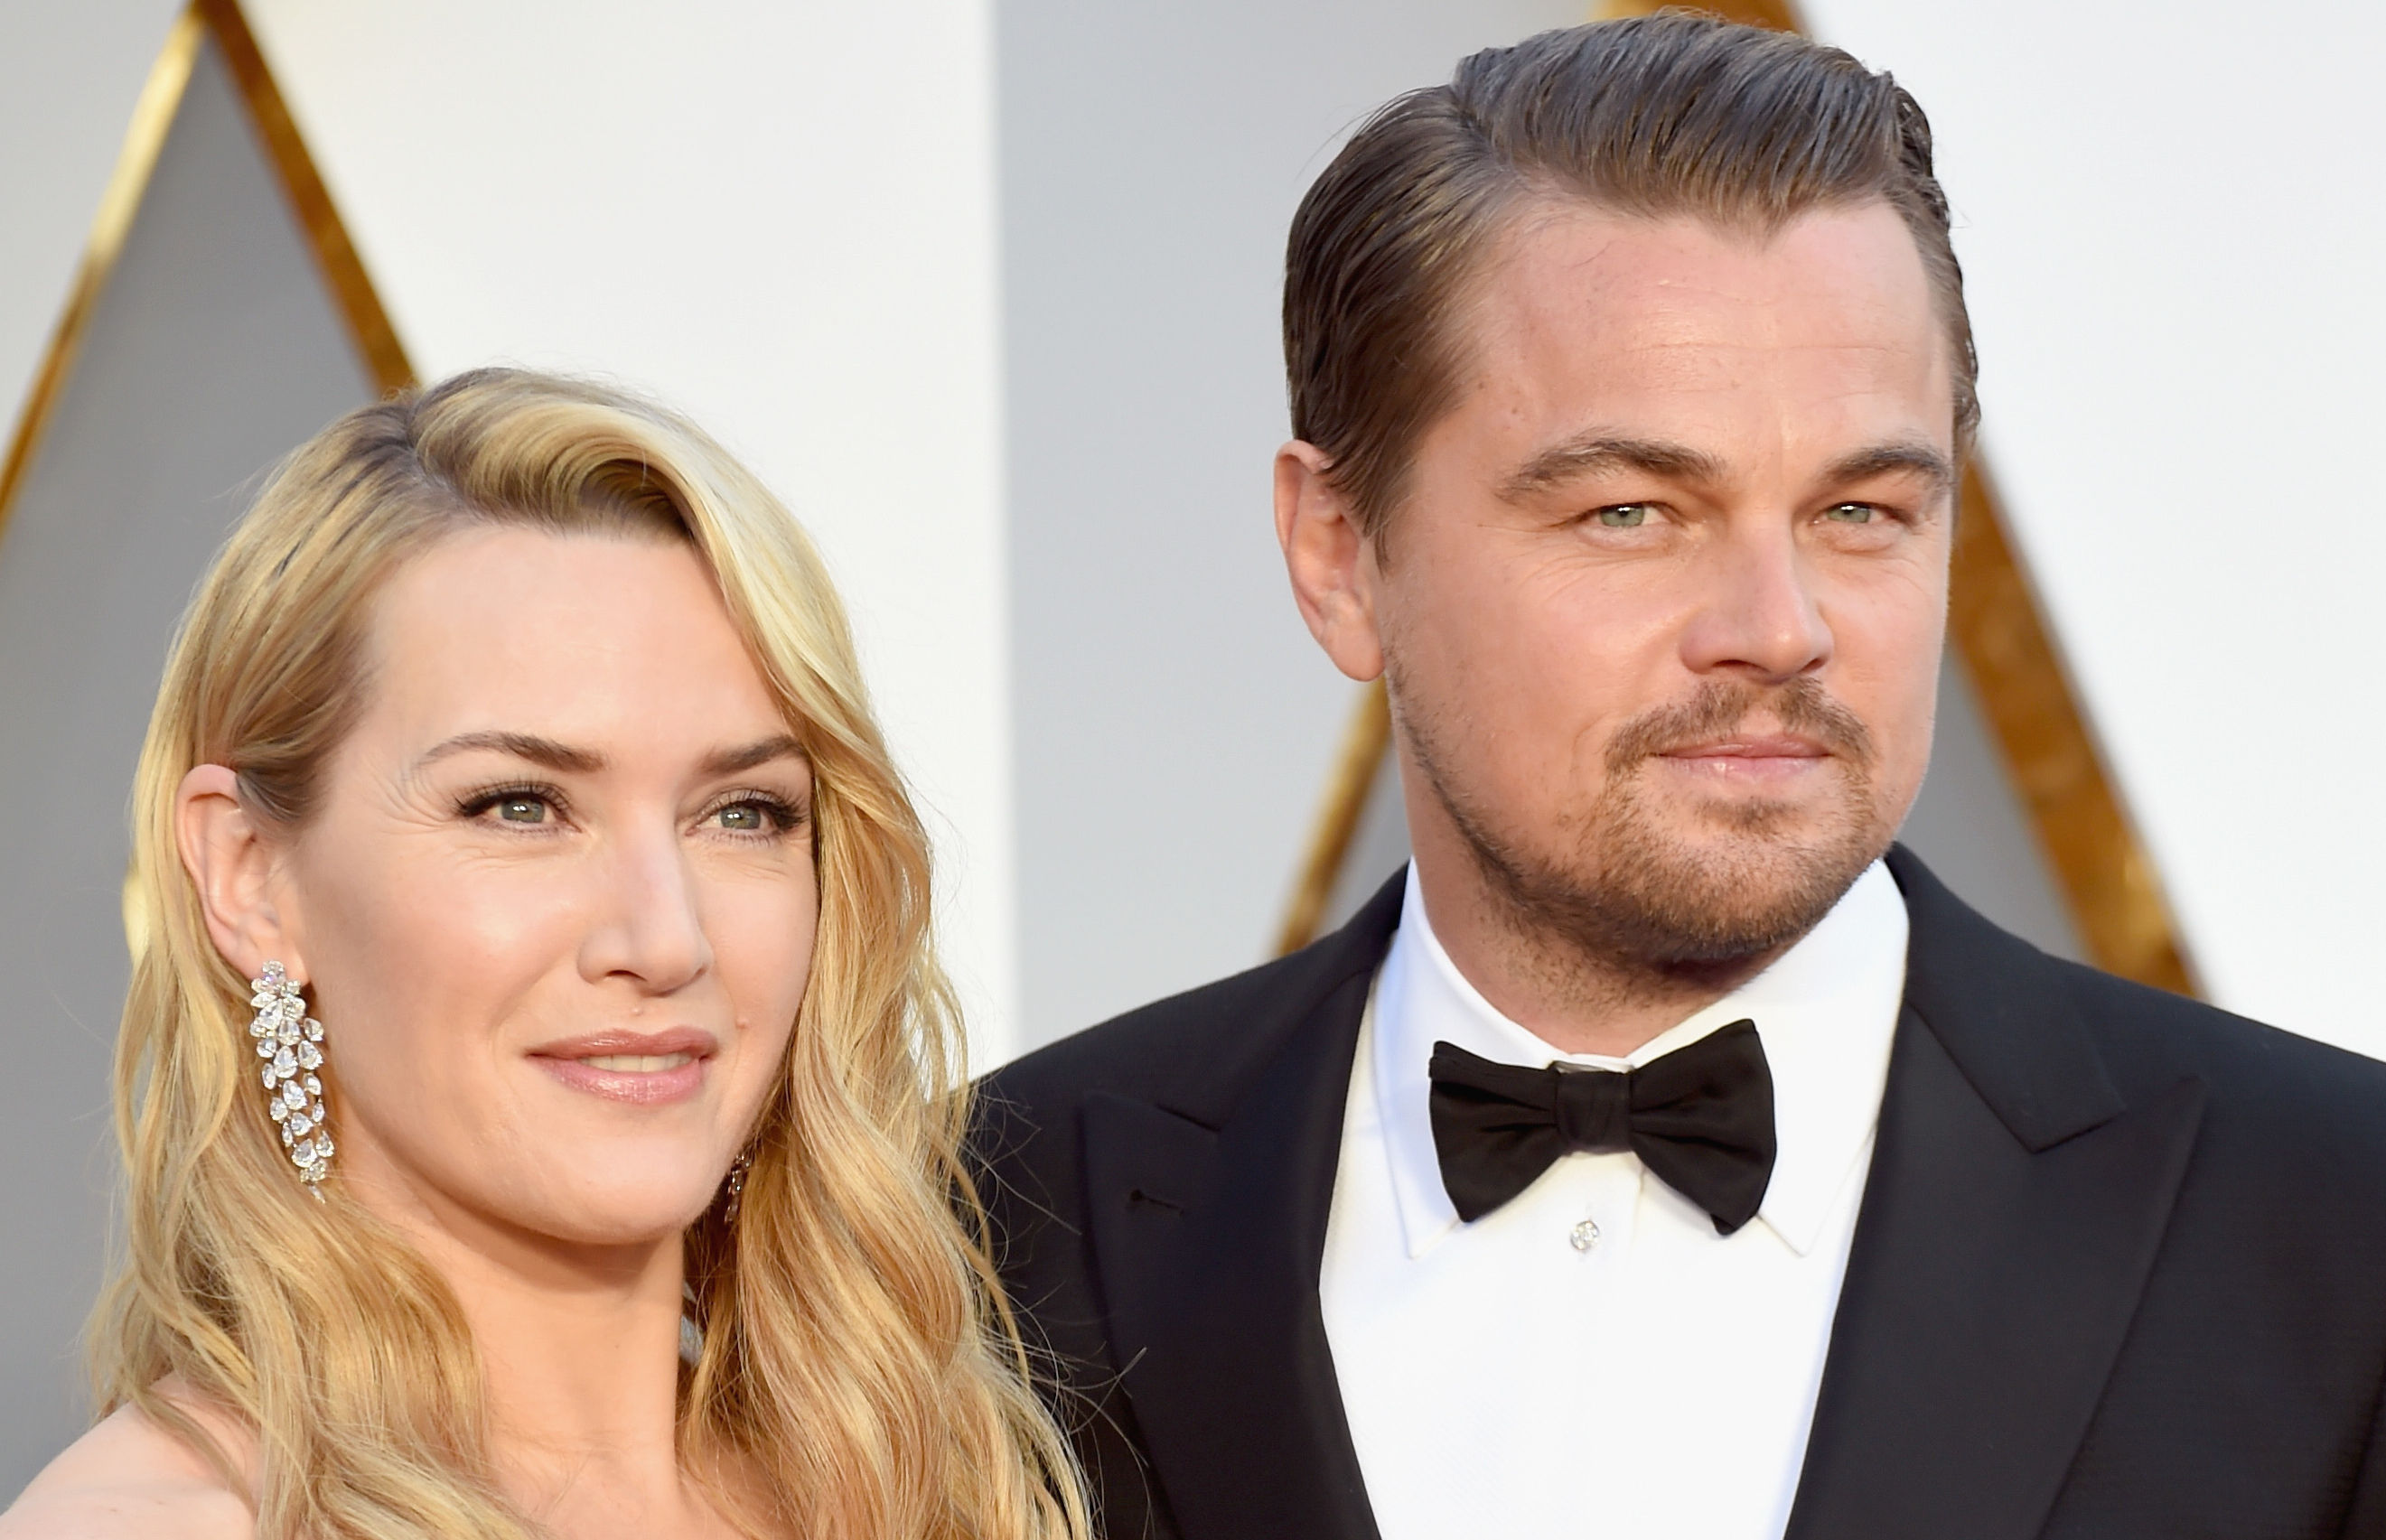 Leonardo DiCaprio & Kate Winslet Reunite at Oscars 2016